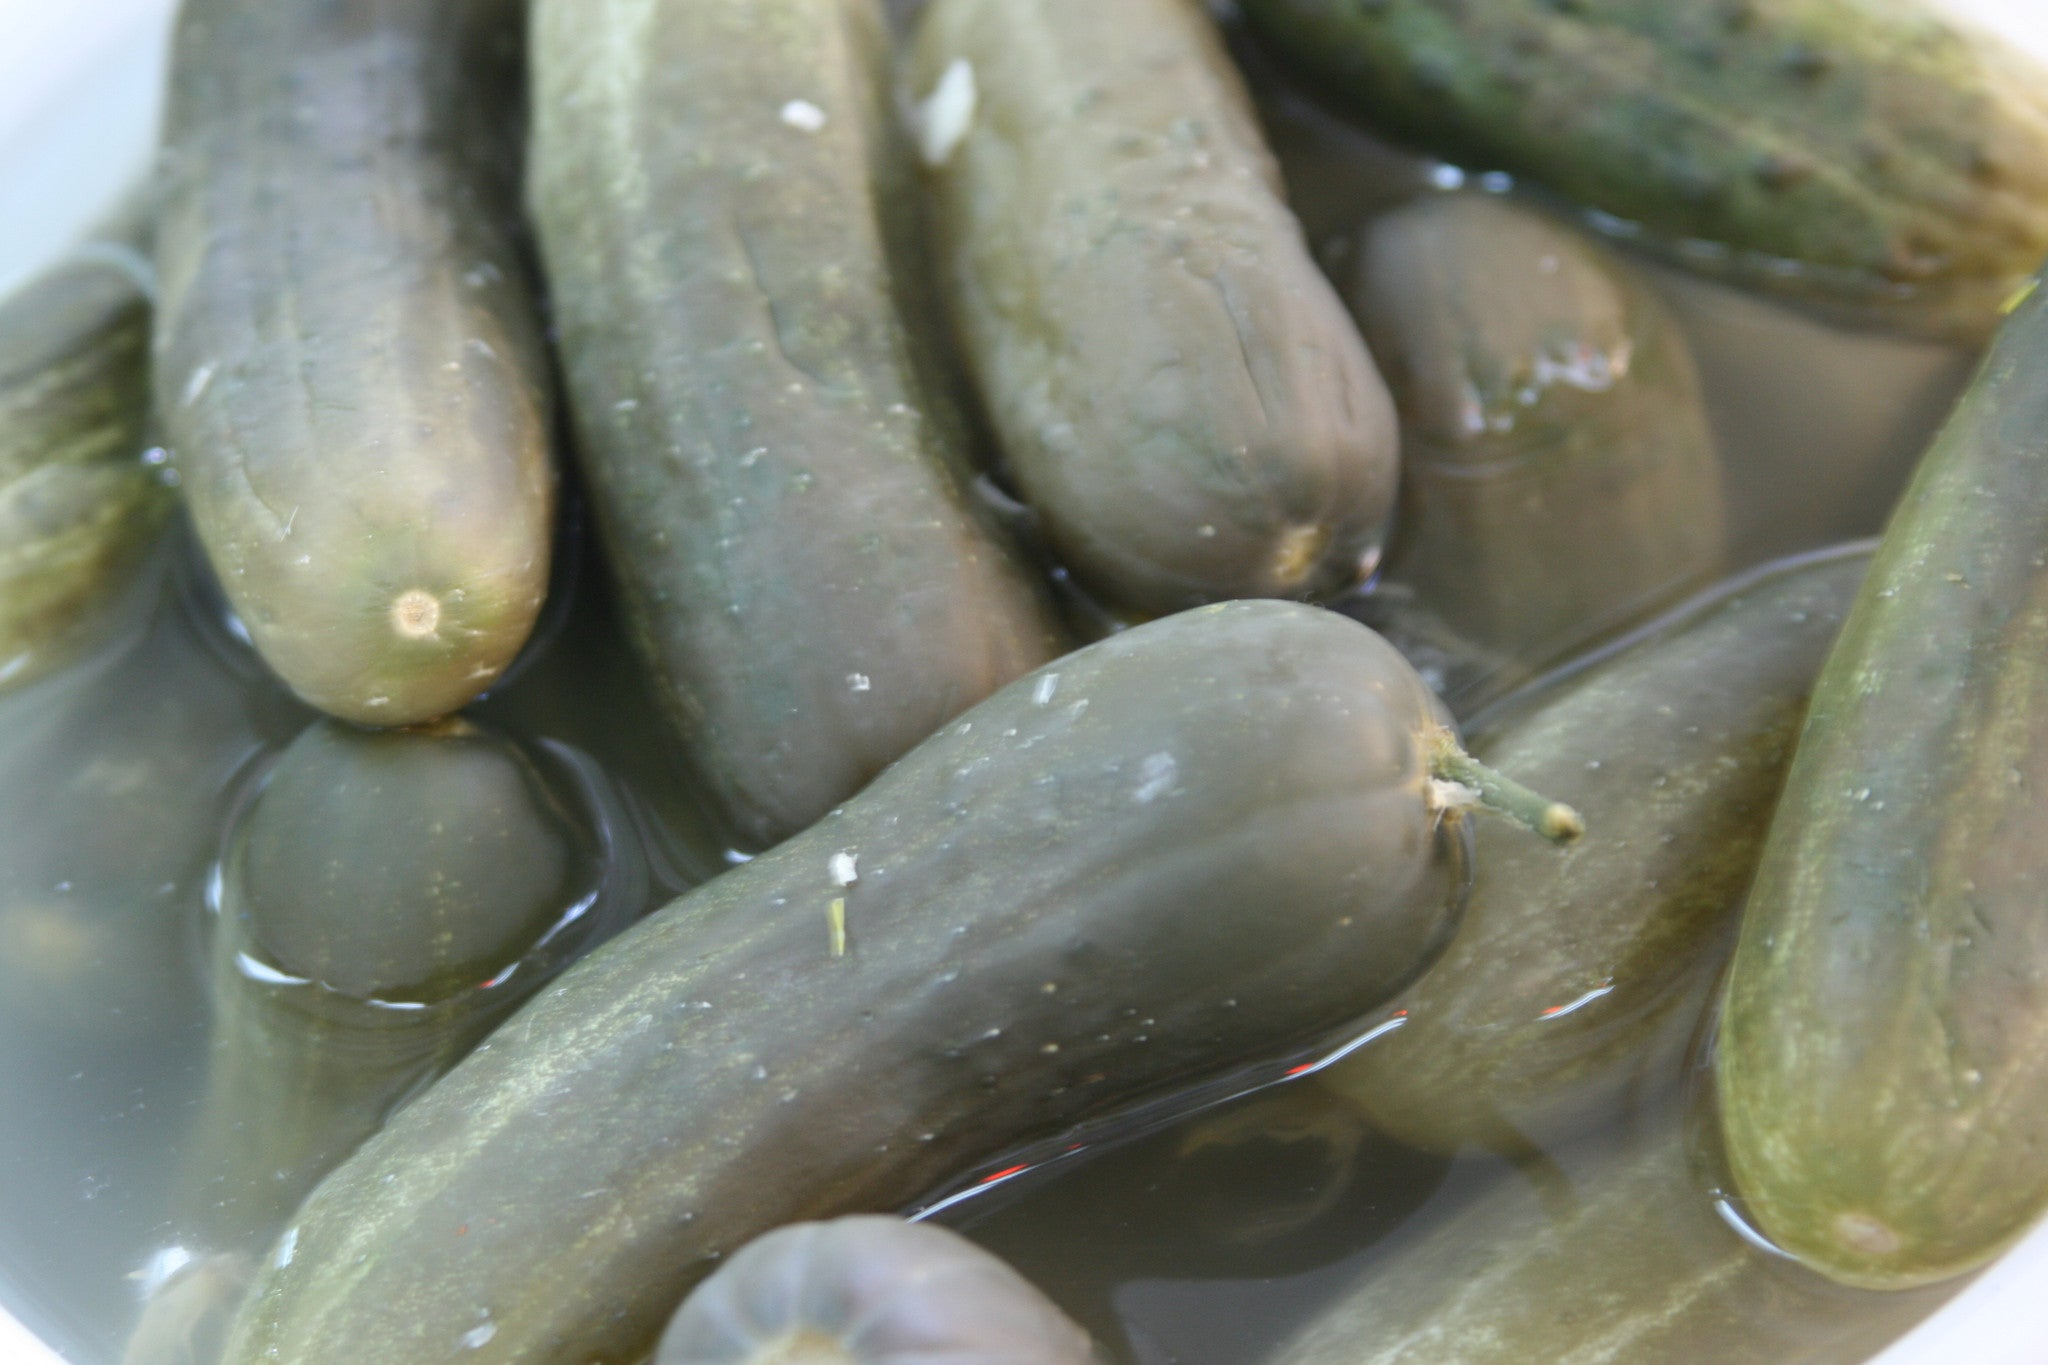 Loose Pickles: $1.50 each